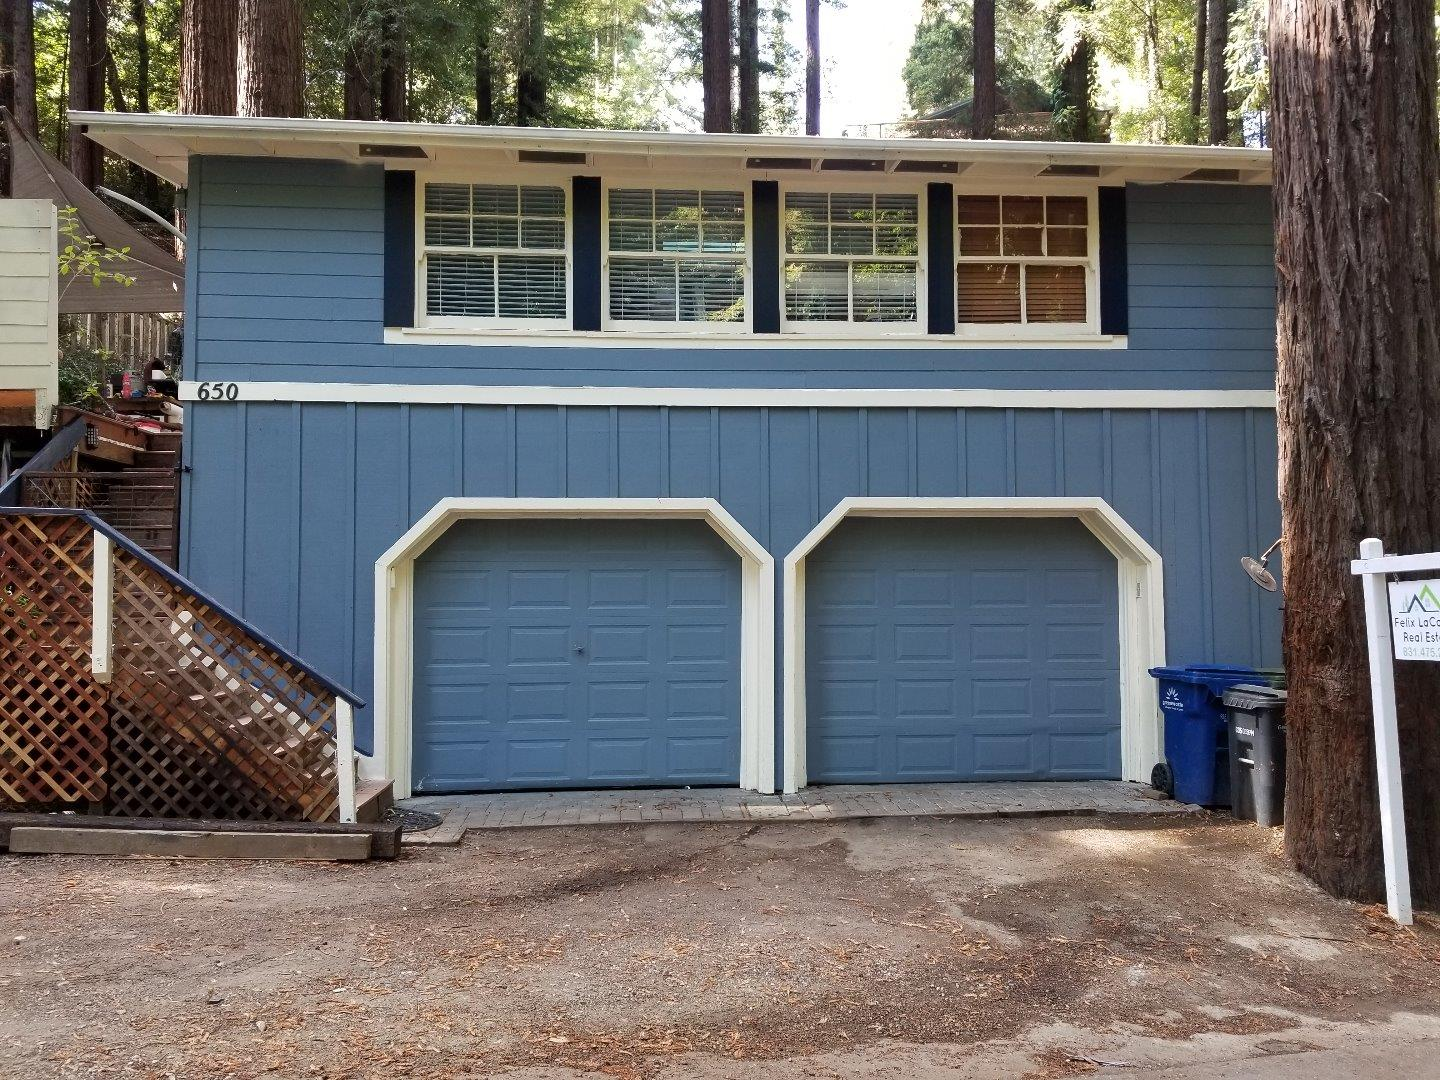 Very cute Forest Lakes home across from Lake. Rare 3 bedroom home in this price range also has a bonus room and an oversized two car garage & EV outlet. Home is freshly painted, and has some new flooring. Outdoors are two large decks, a garden and a natural redwood setting. Forest Lake and the recreation area is only 100 yards away. Walking distance to Felton and Henry  Cowell Park. 10 miniutes to Santa Cruz and Hwy 17. Inspection reports and disclosure available.